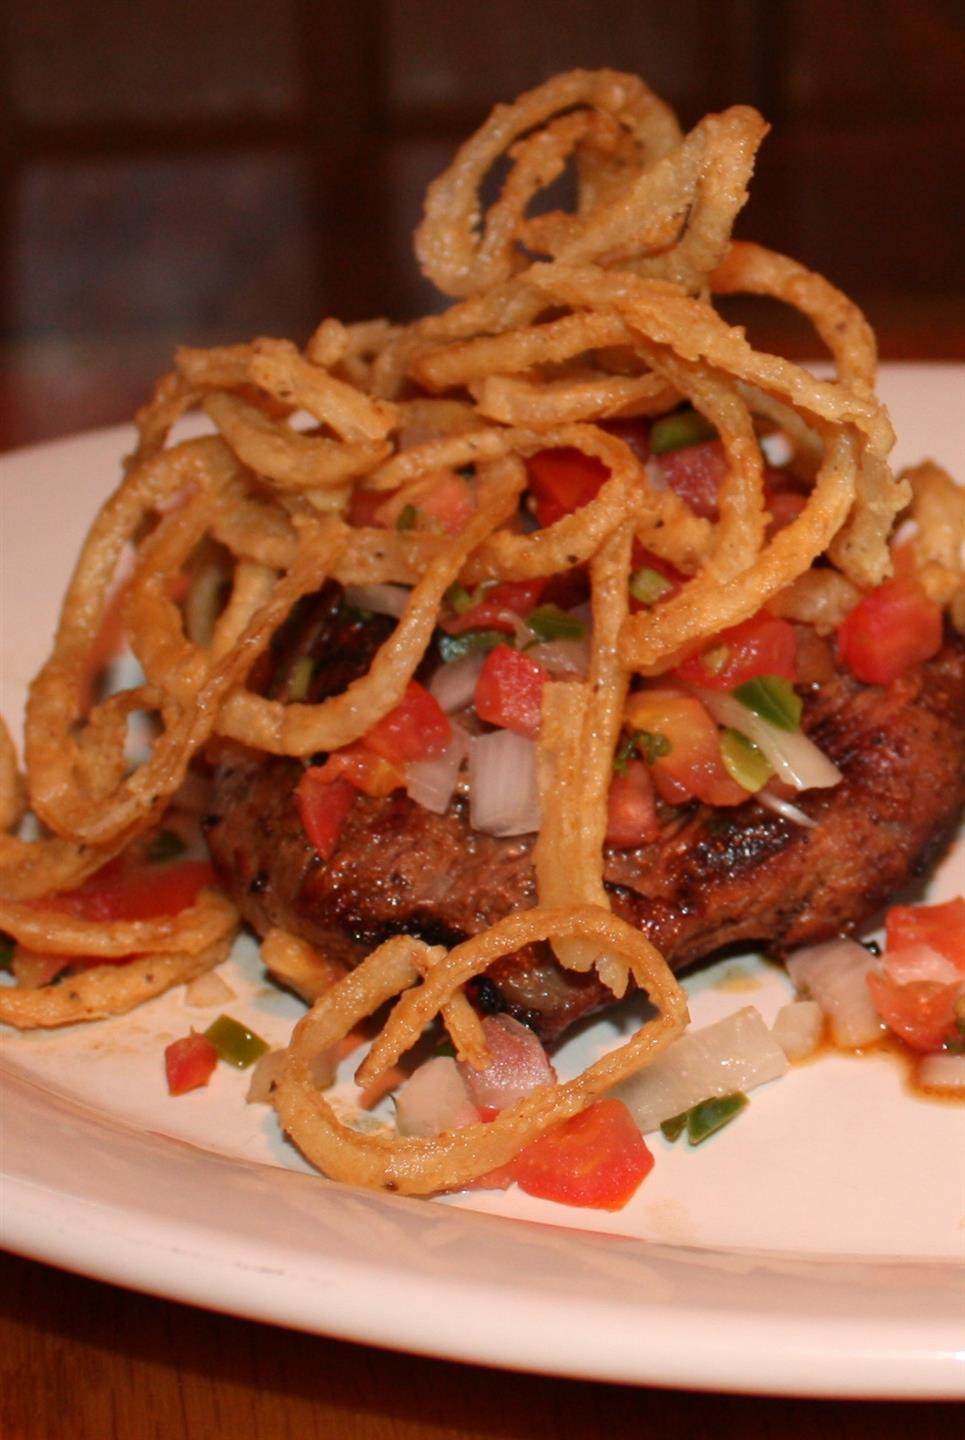 grilled steak with fried onions and tomatoes